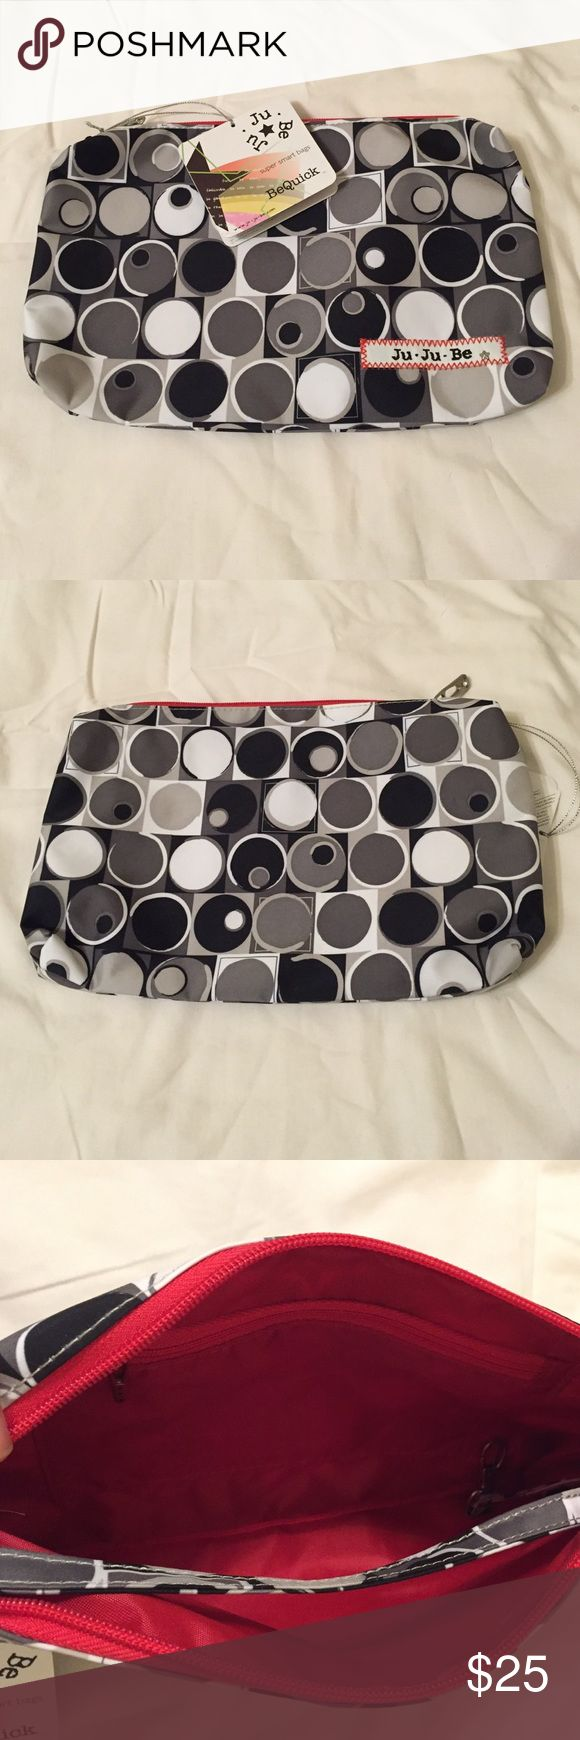 NWT JuJuBe Be Quick in Midnight Eclipse New with tags Be Quick from JuJuBe in Midnight Eclipse. Black white and grey, with bright red lining. JuJuBe Accessories Bags